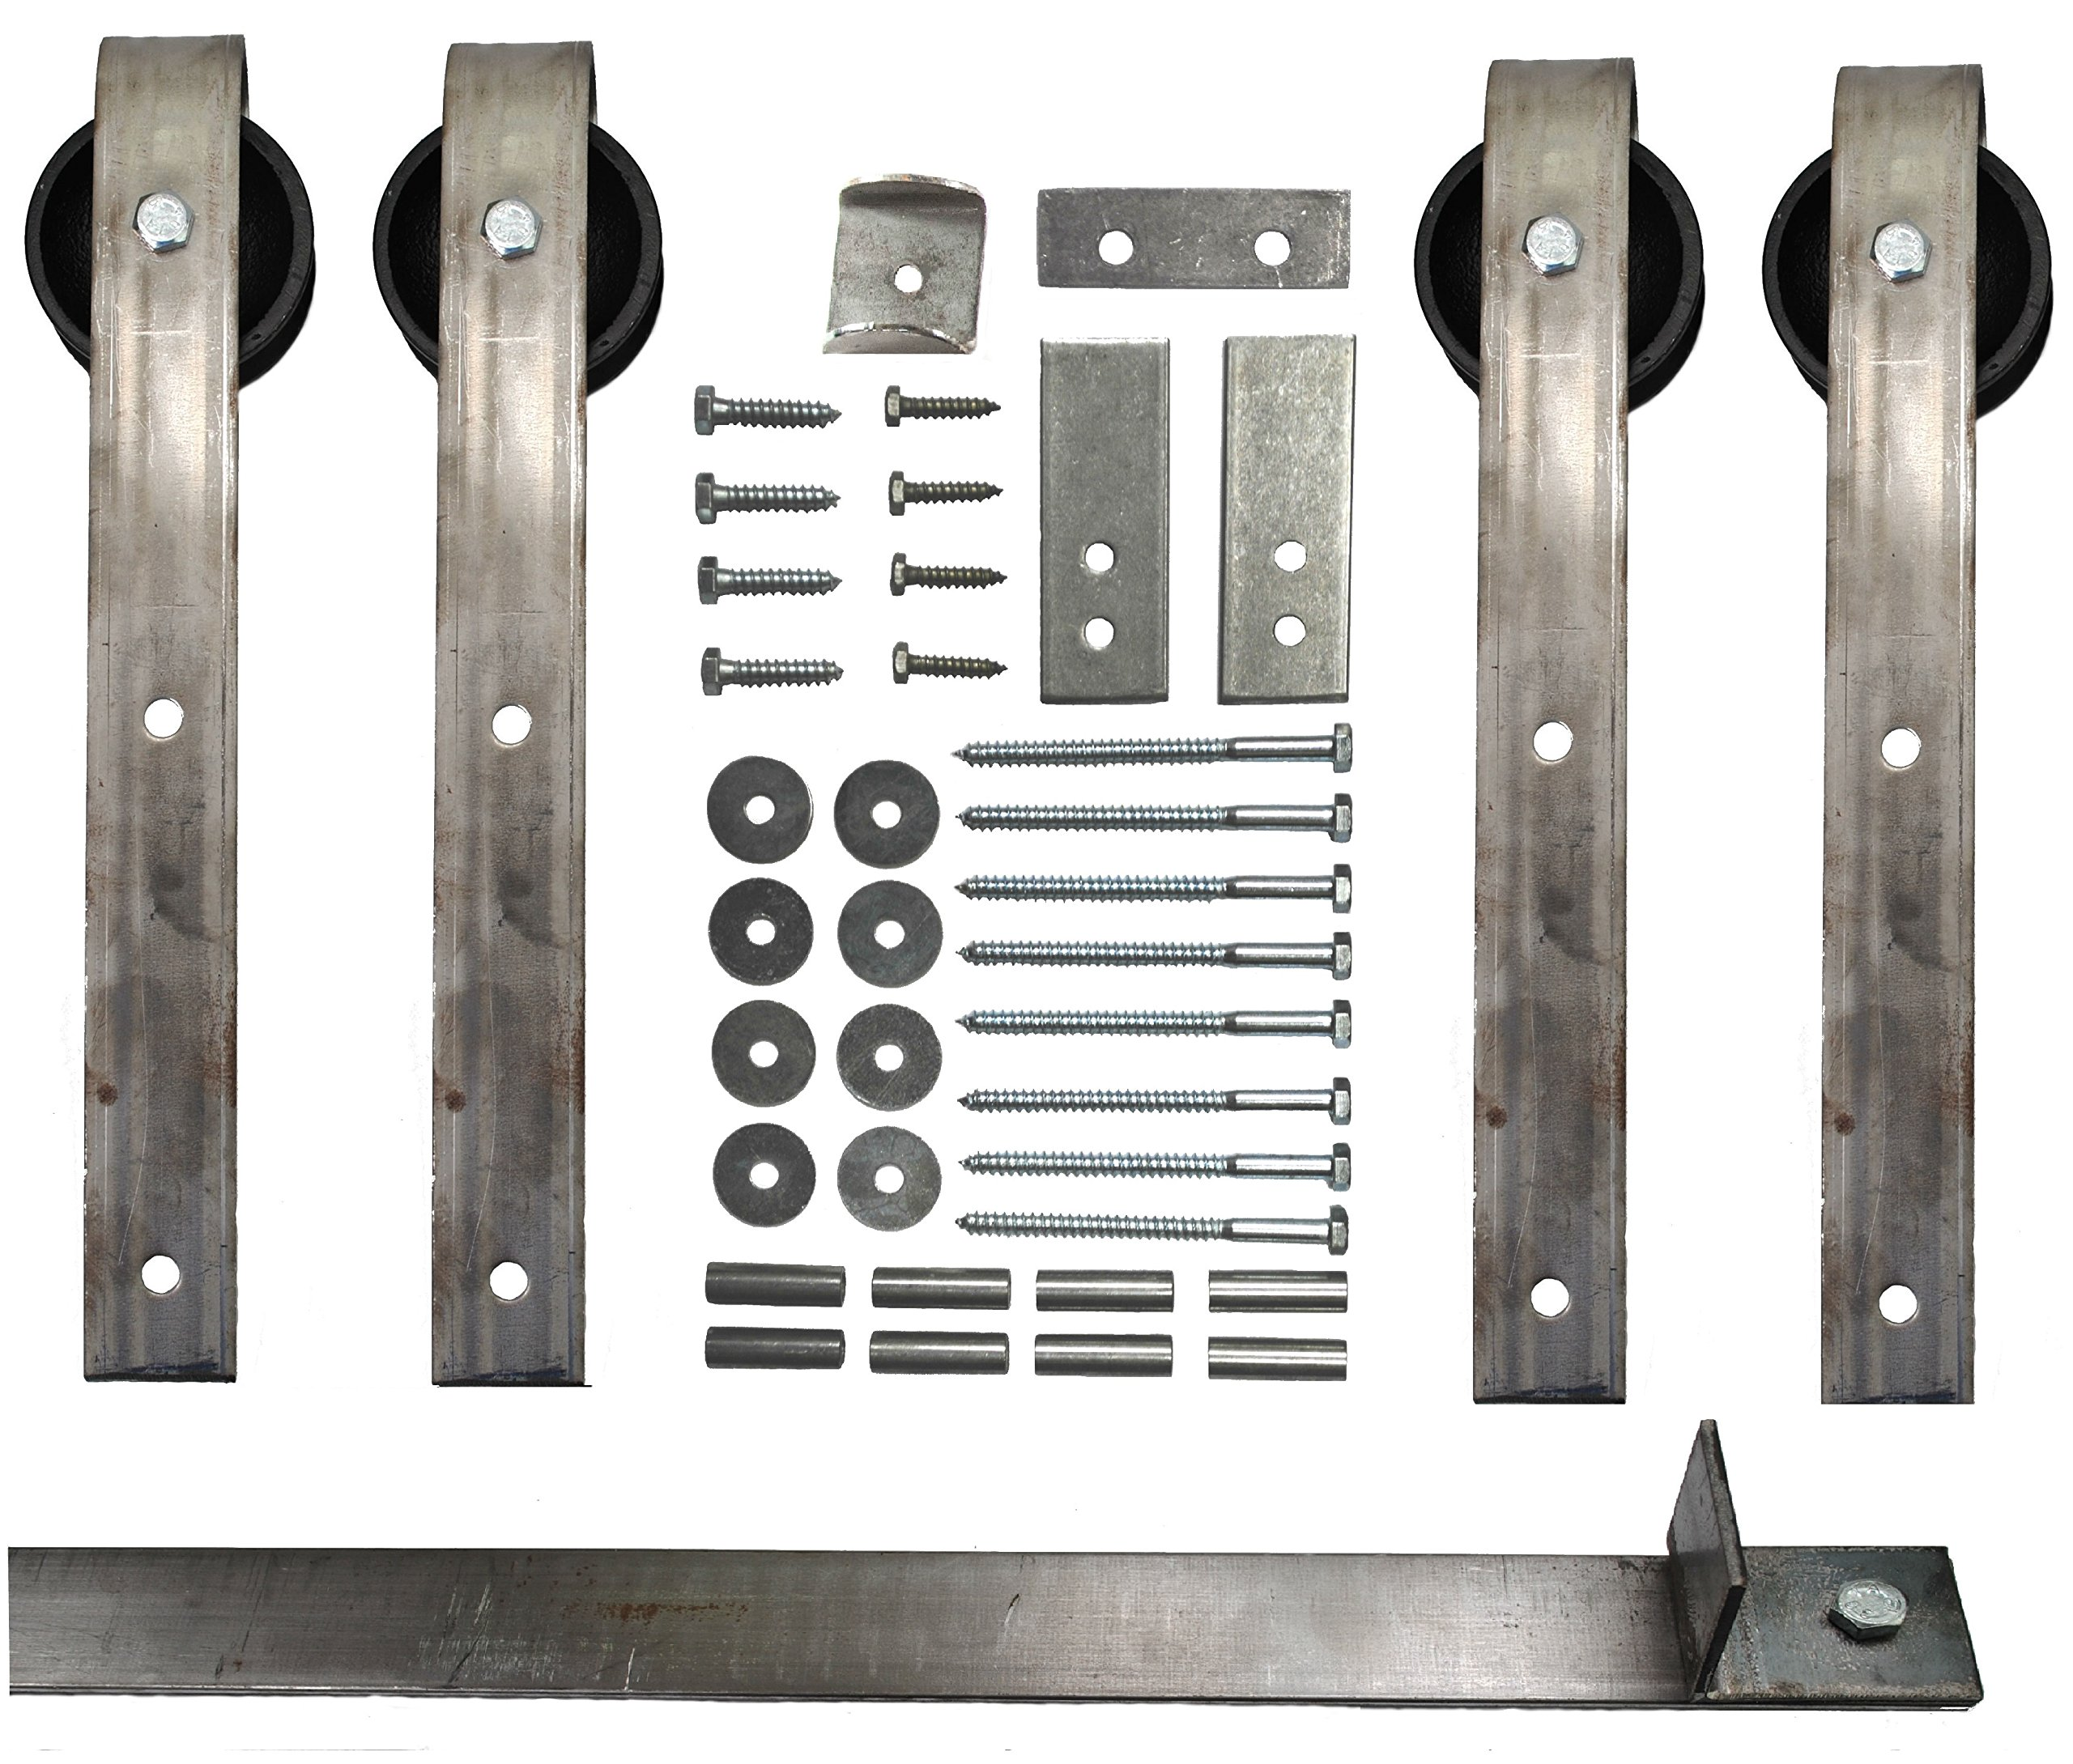 Double Sliding Barn Door Hardware Kit with 8 Ft. Track Included - Made in USA